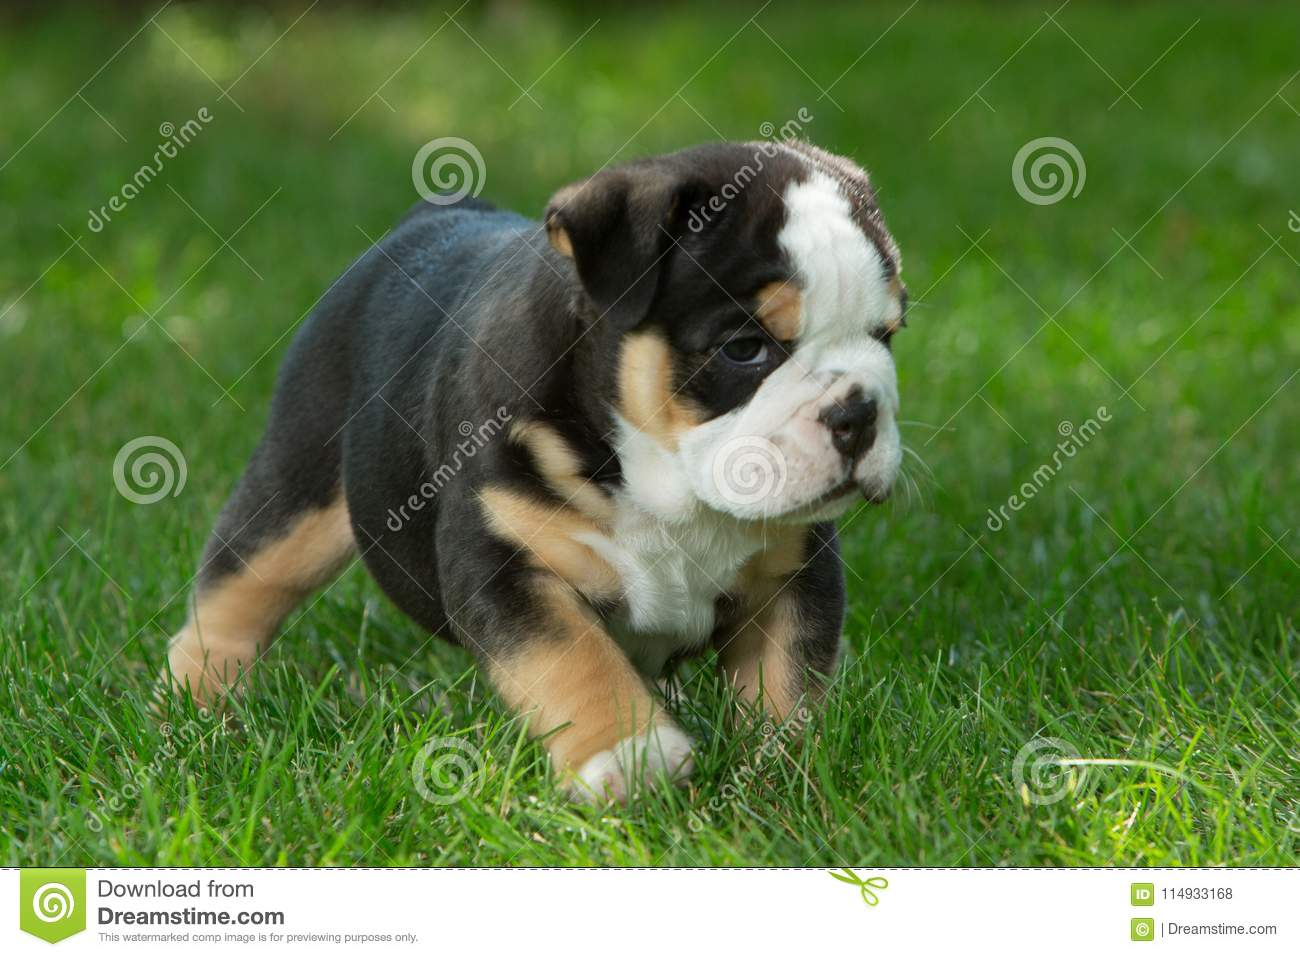 Cute Brown And Black Wrinkled Bulldog Puppy In The Grass Looking At Something Stock Photo Image Of Grass Standing 114933168